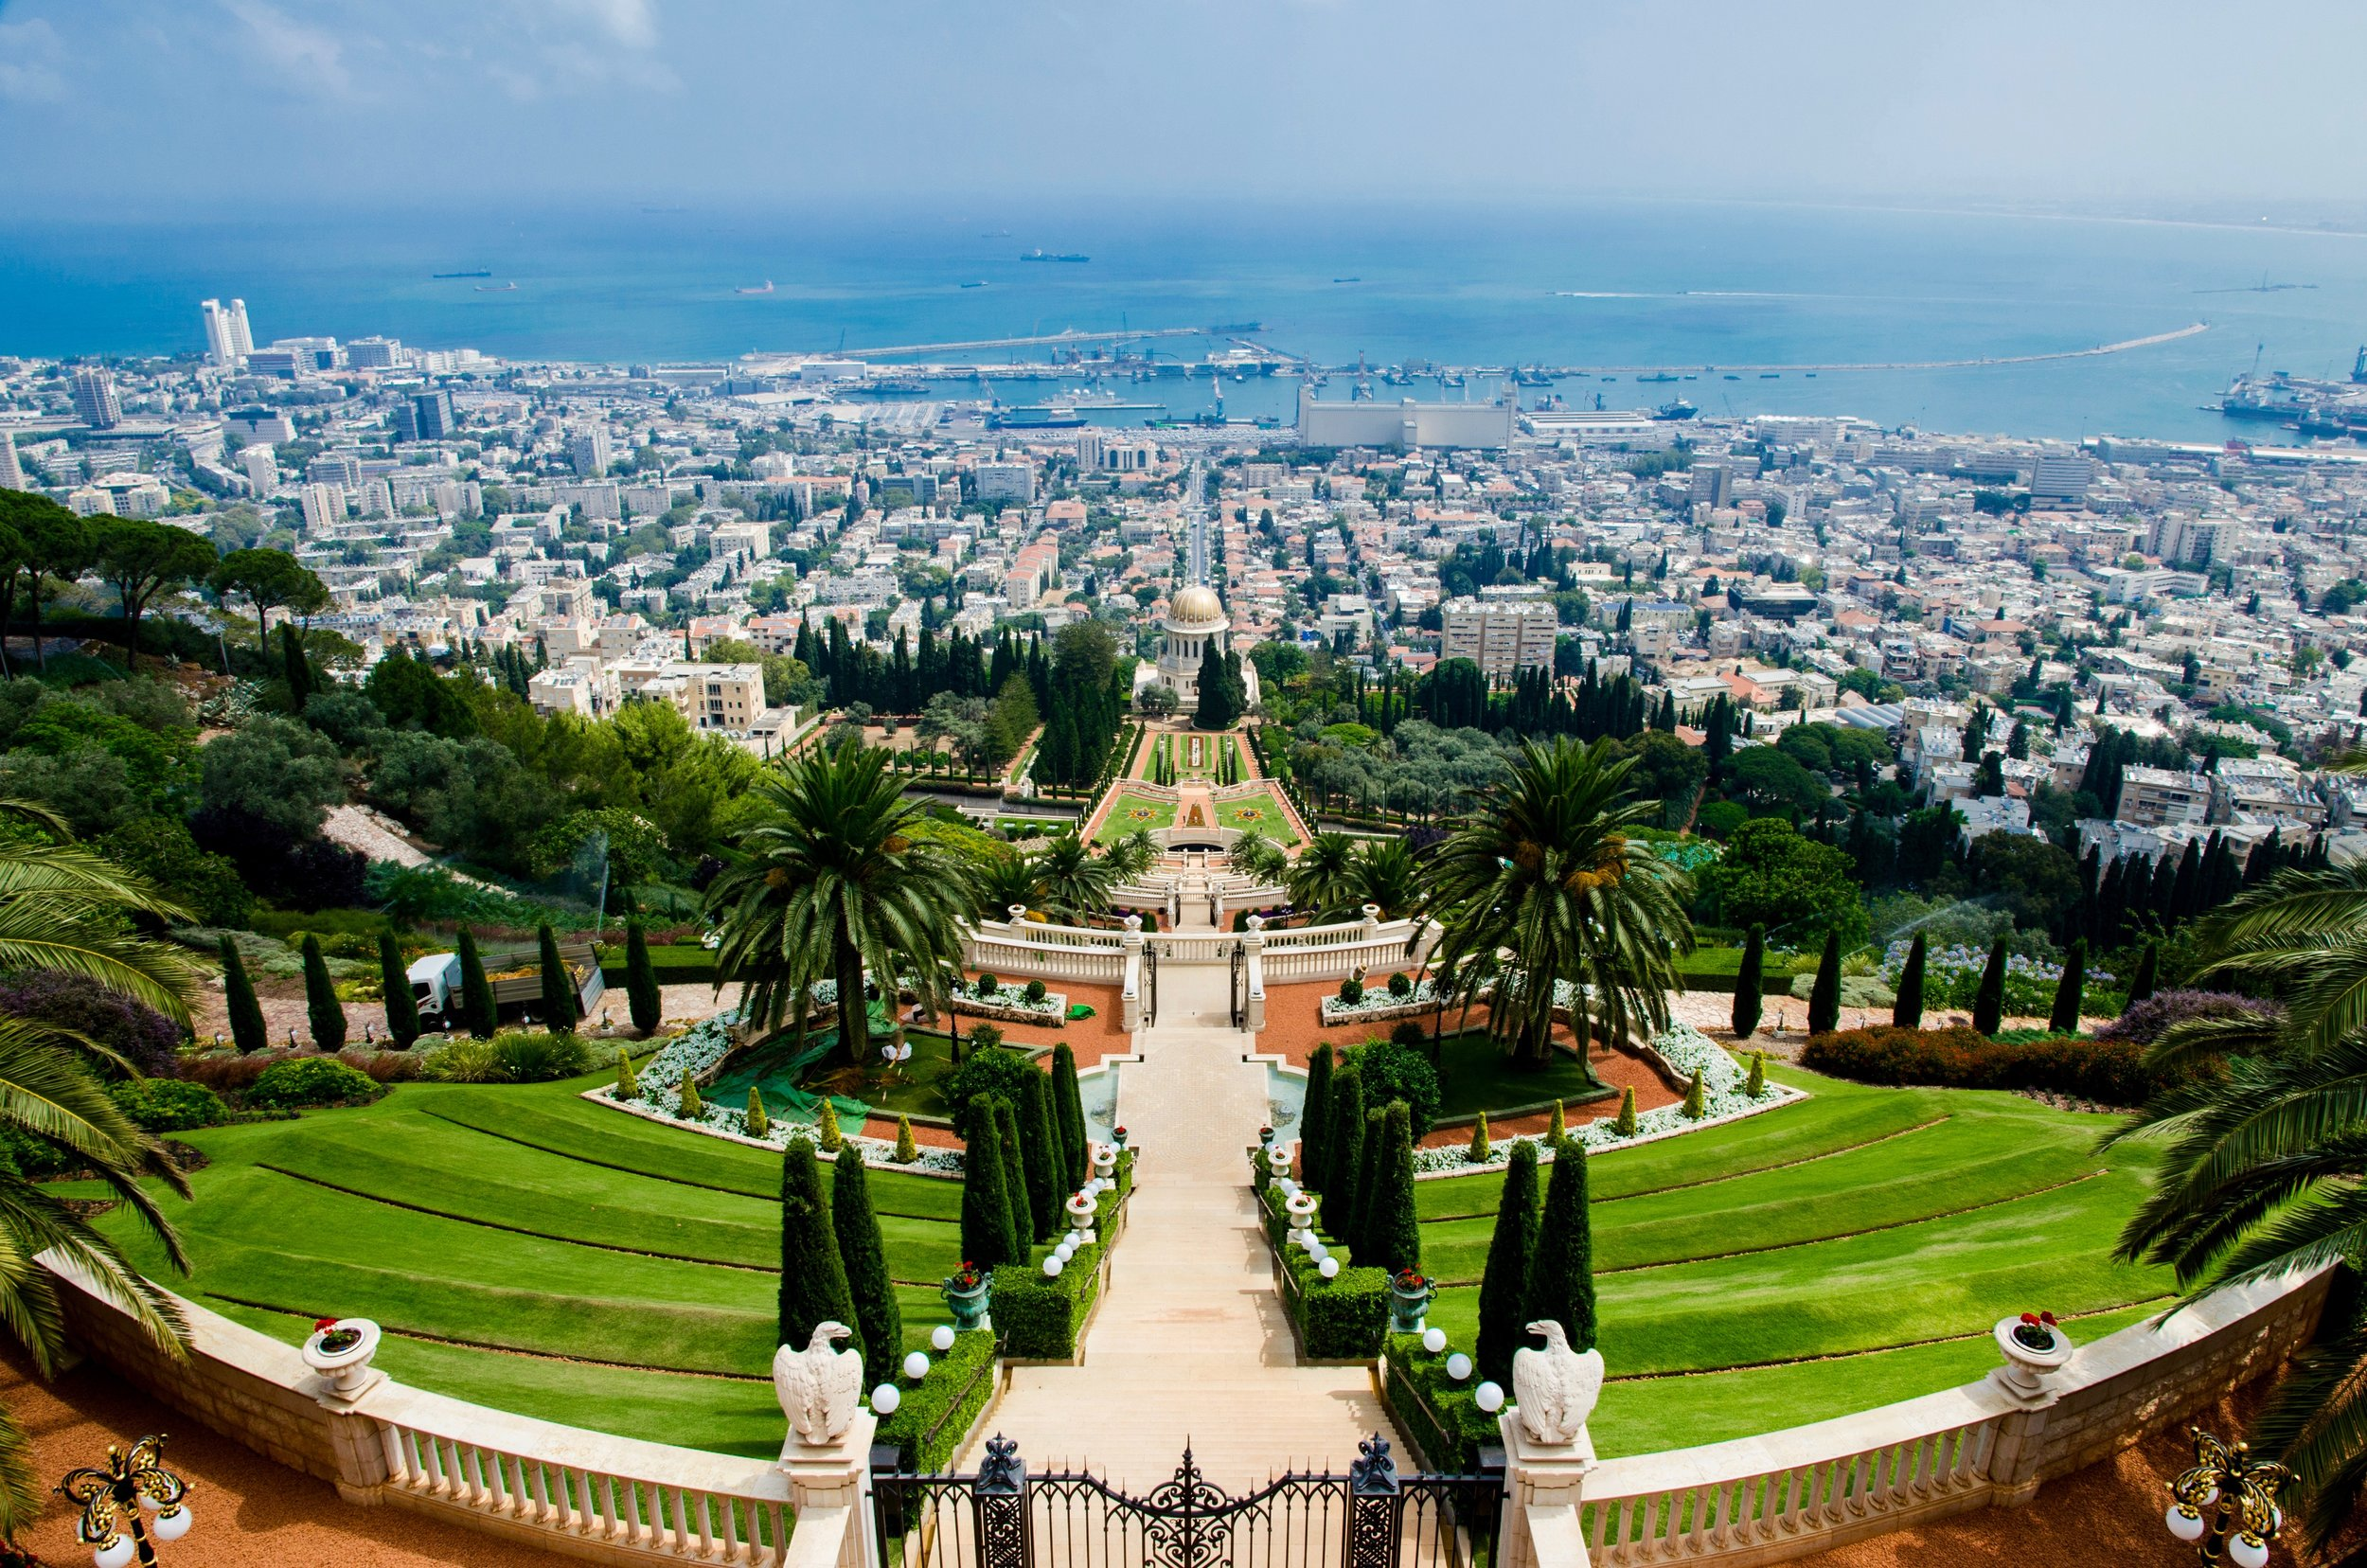 View of Haifa and the port from the top of the gardens